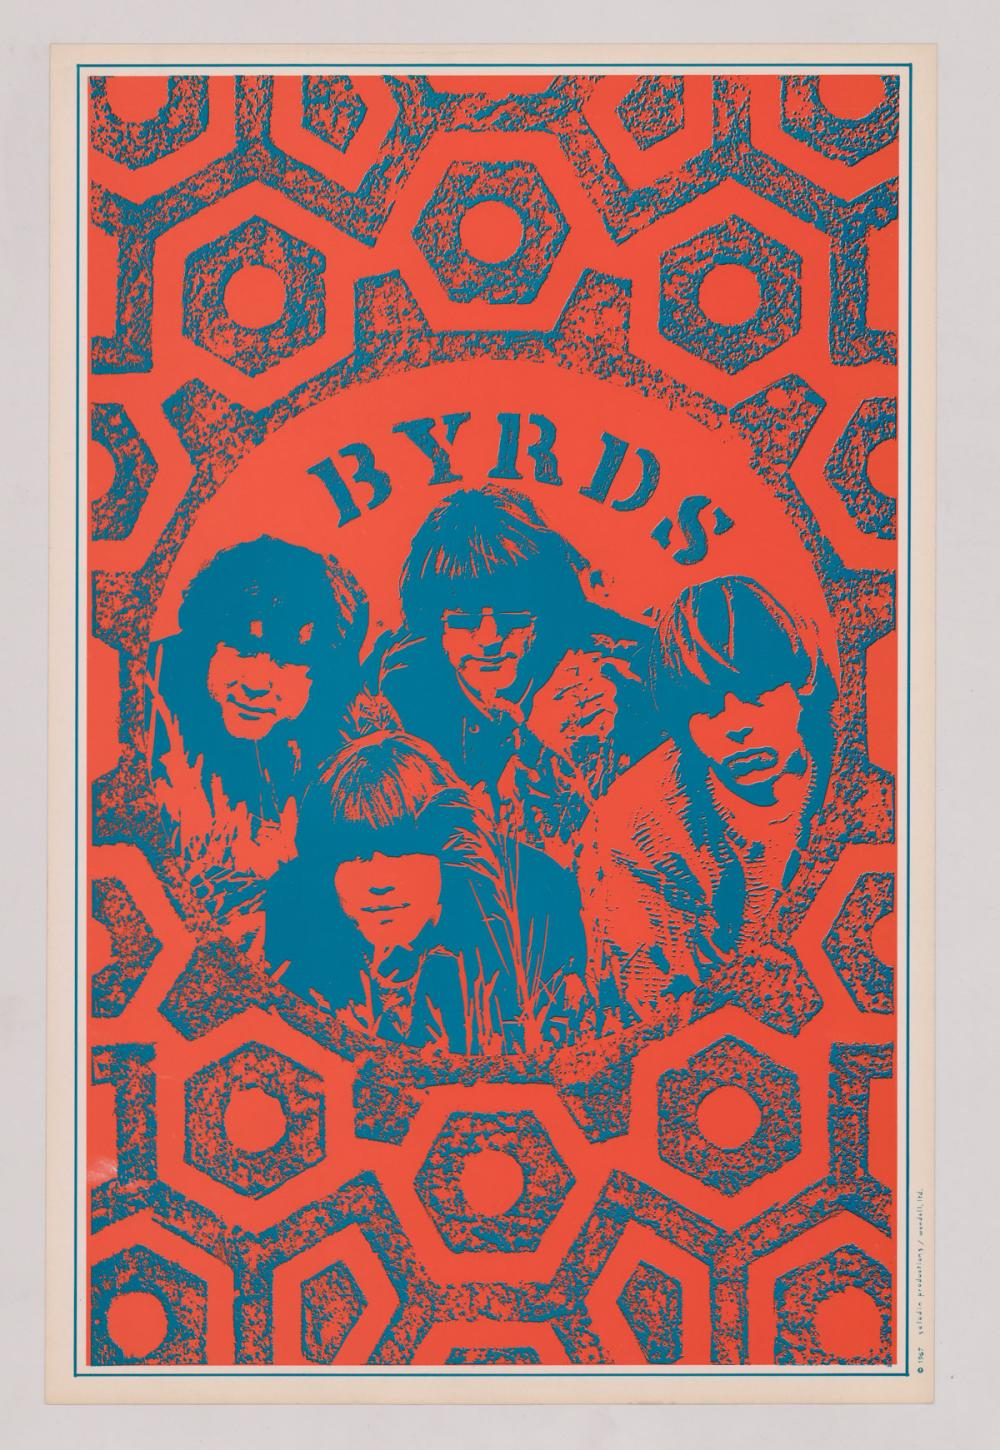 Lot 620A: The Doors and The Byrds Posters (2)